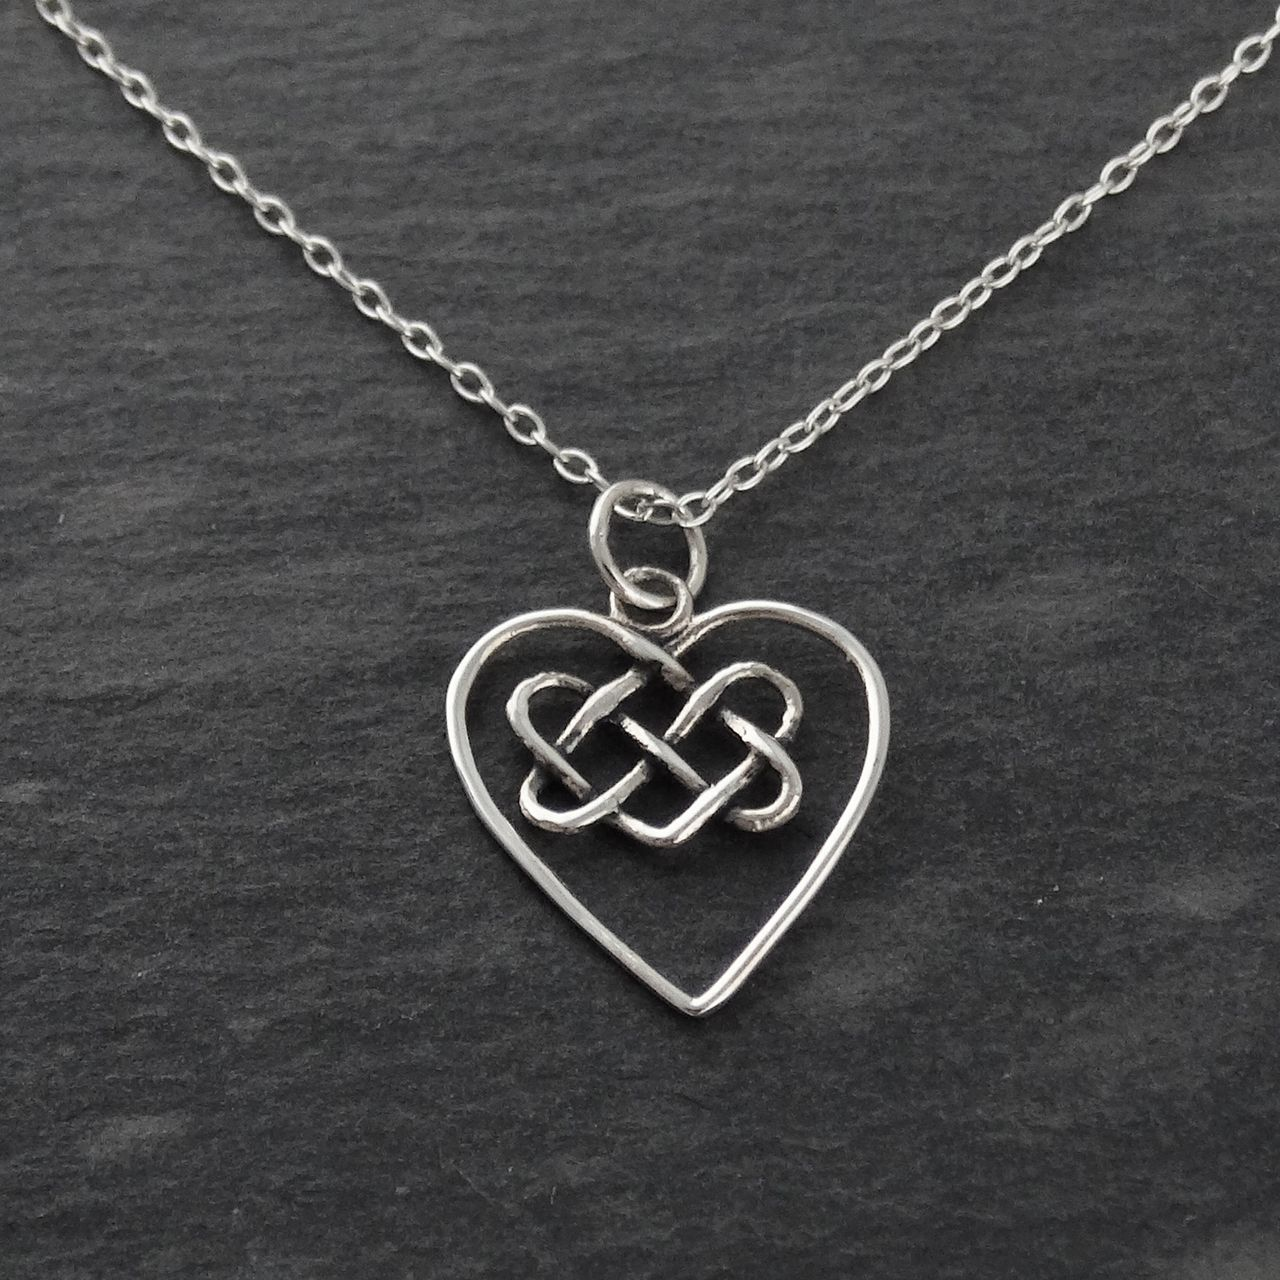 Celtic knot heart necklace 925 sterling silver adornos celtic knot heart necklace 925 sterling silver aloadofball Images